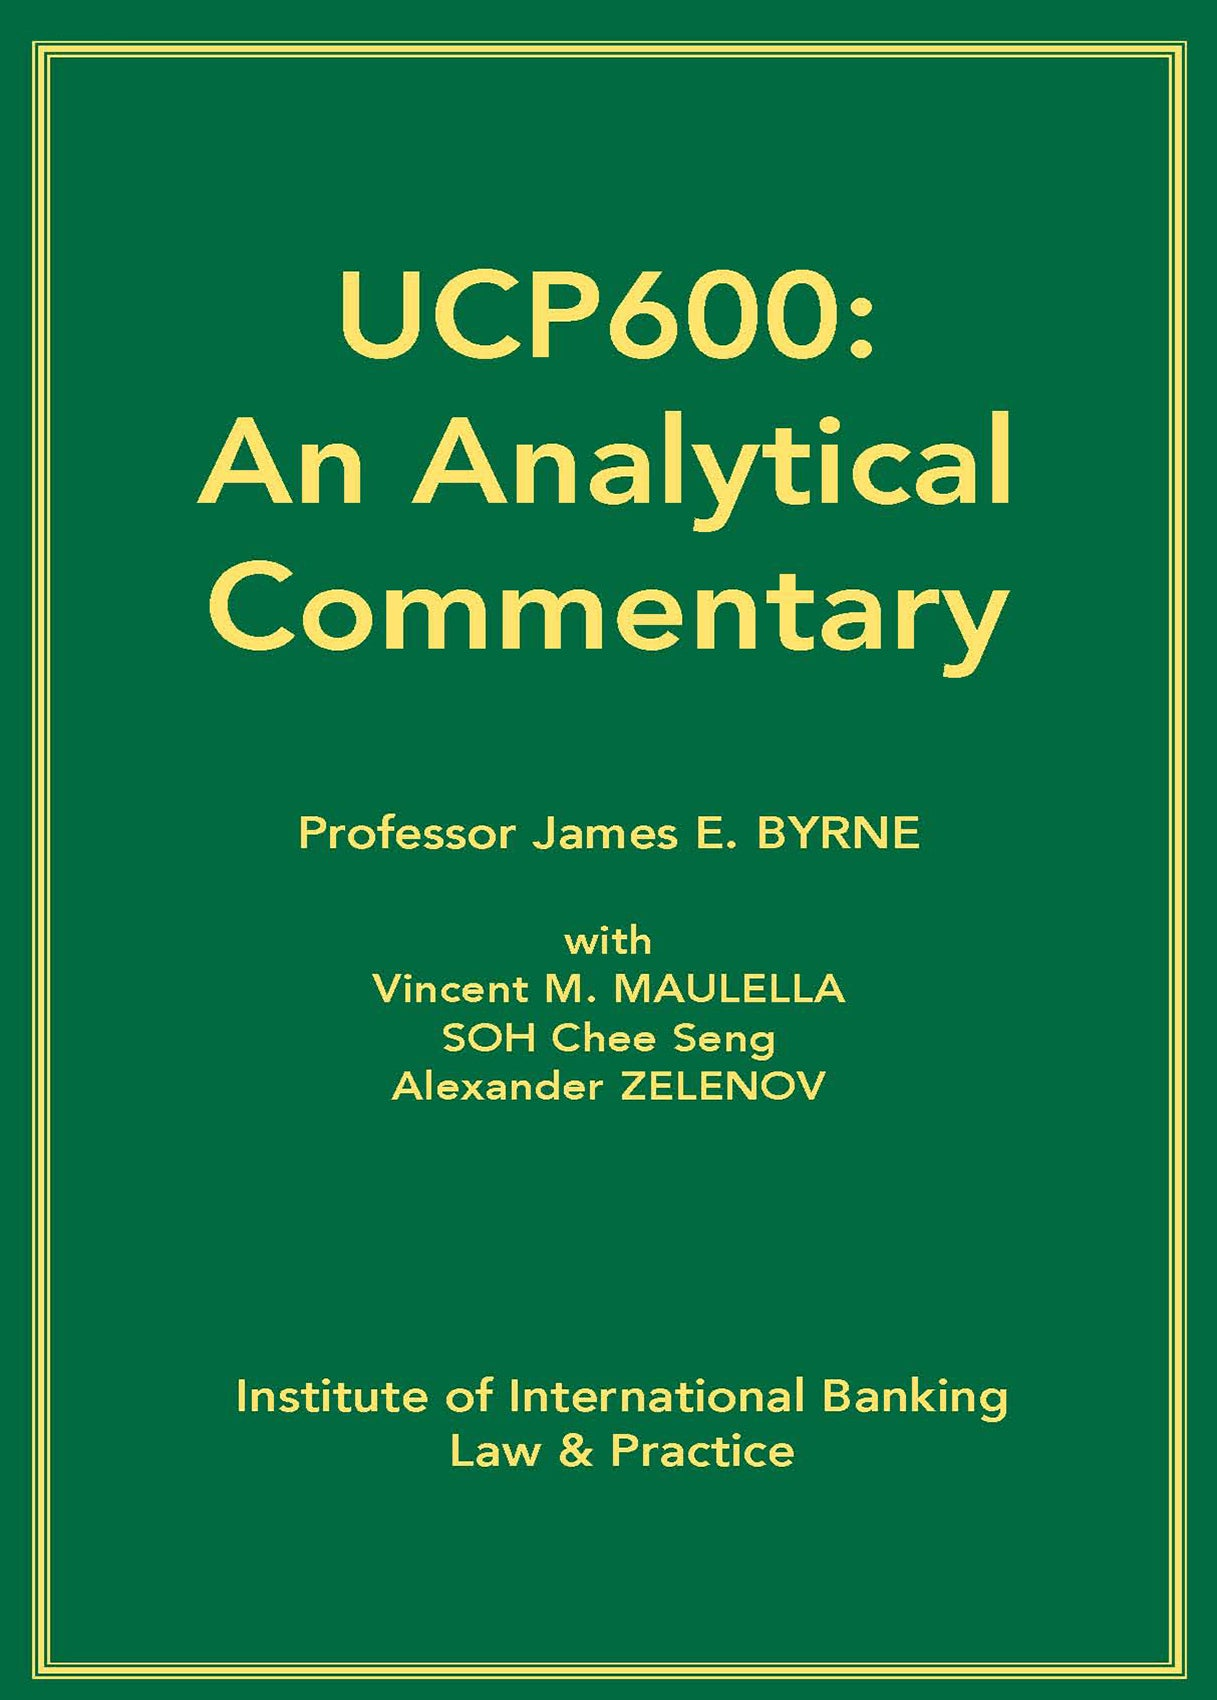 UCP600: An Analytical Commentary